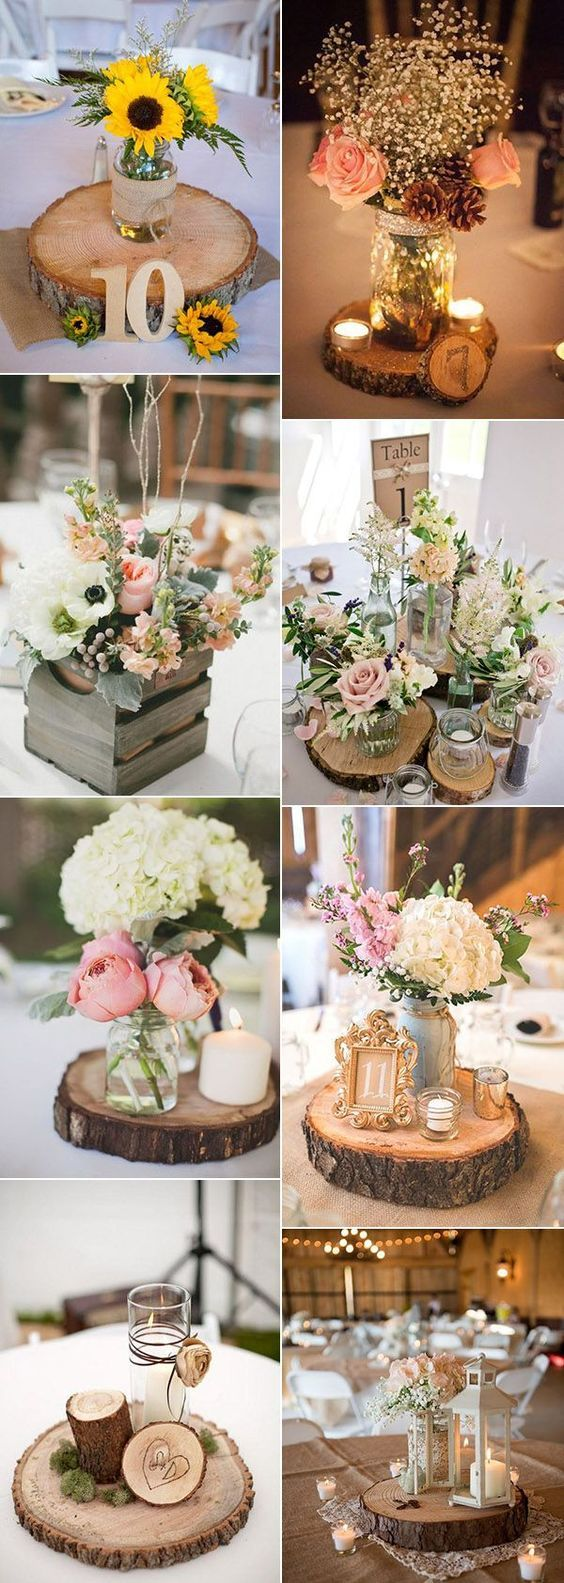 2017 wedding trends 36 perfect rustic wood themed wedding ideas 2017 wedding trends 36 perfect rustic wood themed wedding ideas oh best day ever junglespirit Gallery